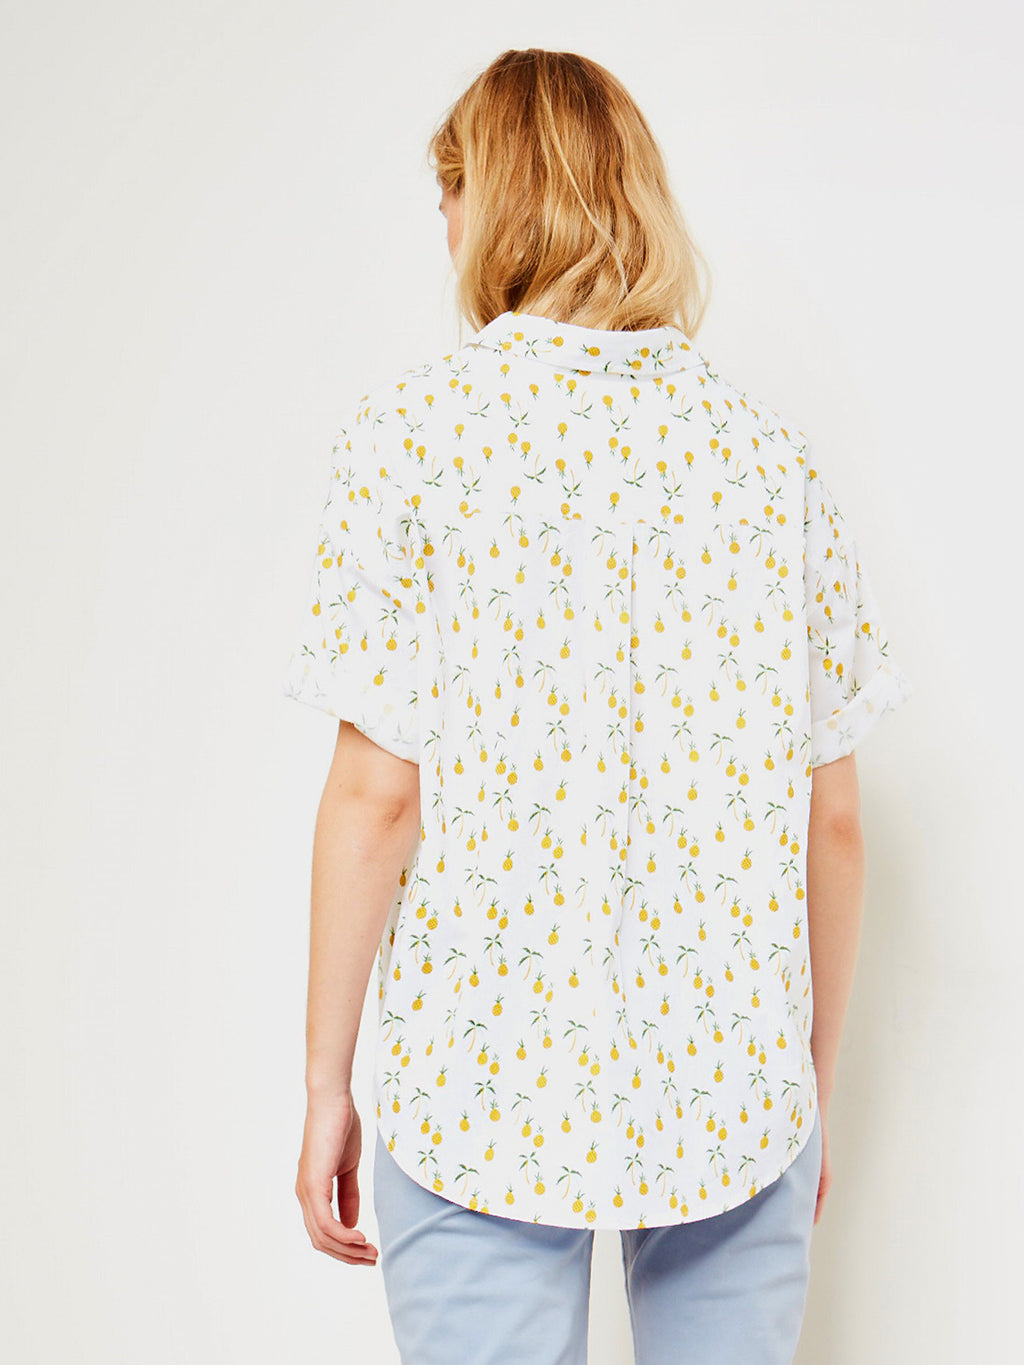 REIKO - Cleo Printed Shirt online at PAYA boutique